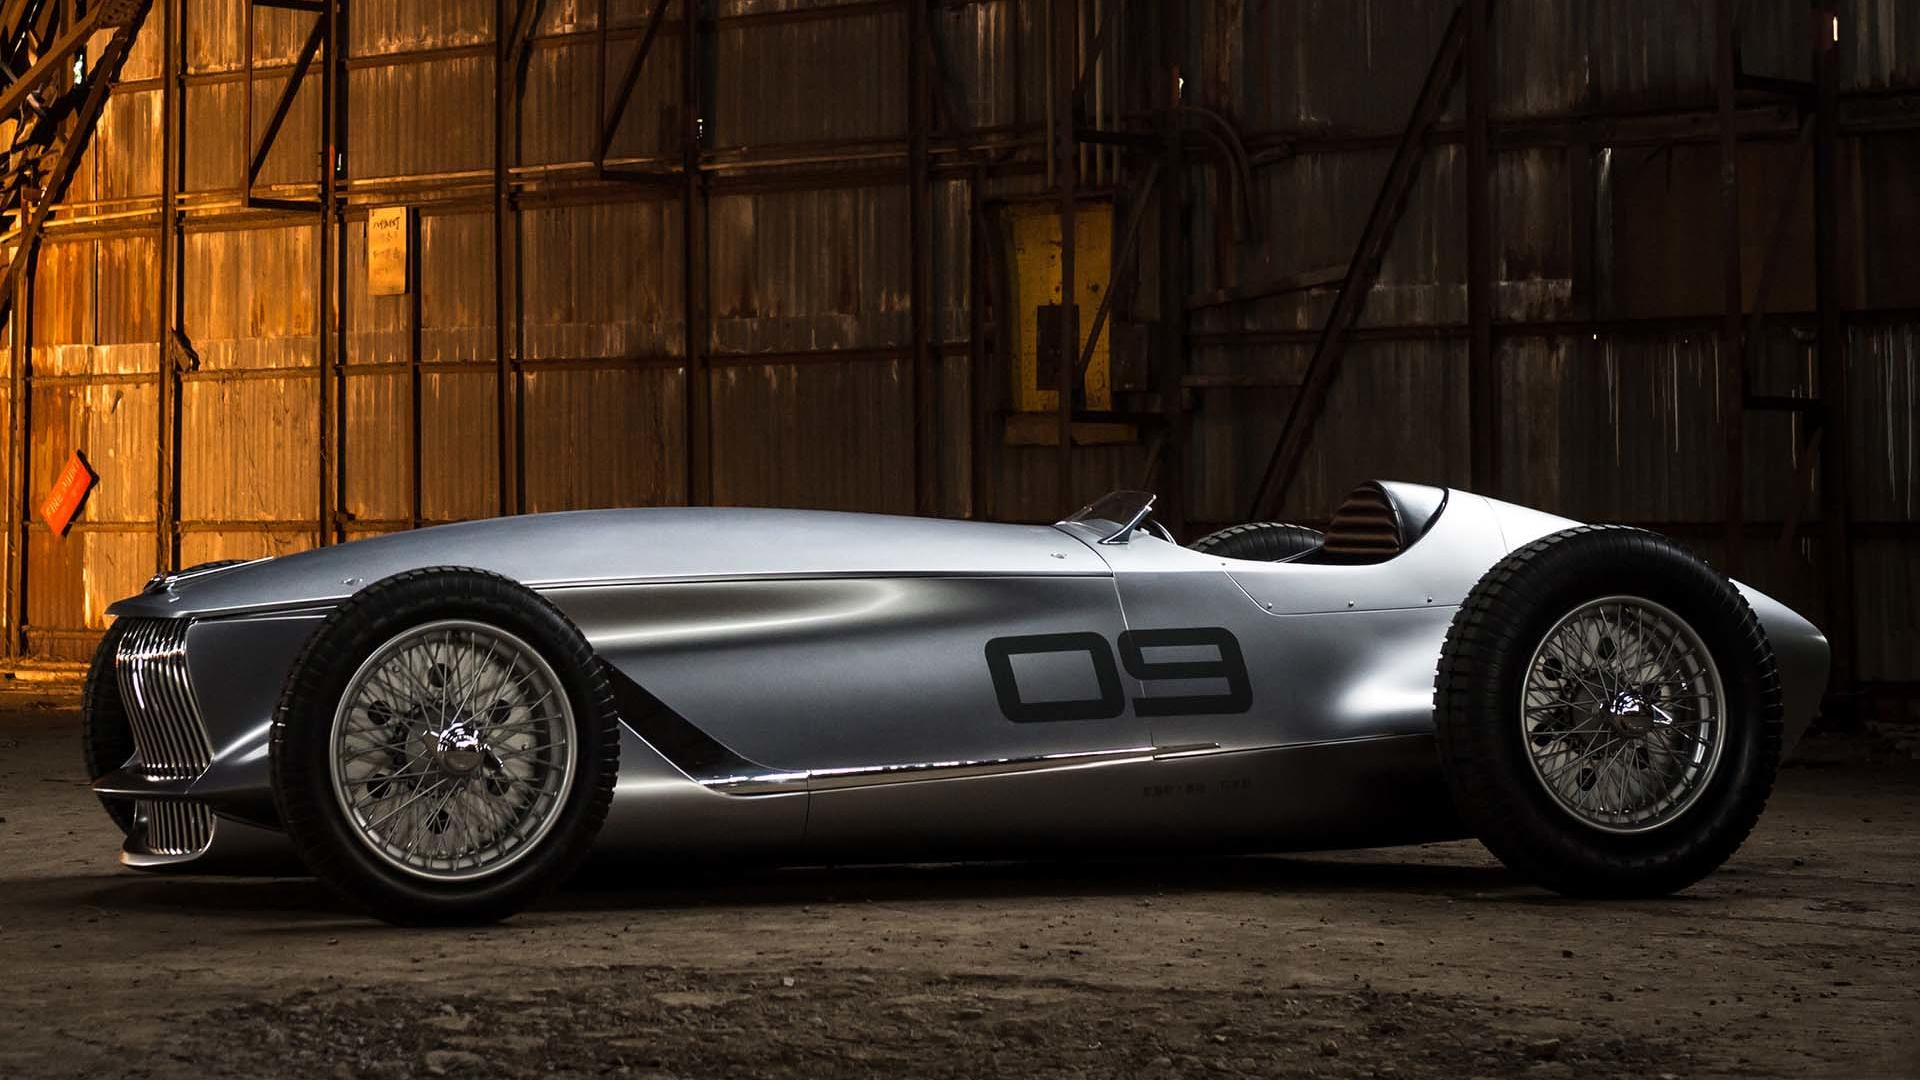 Porsche Boxster Wallpaper Hd Infiniti Rewrites History With Retro Prototype 9 Racer